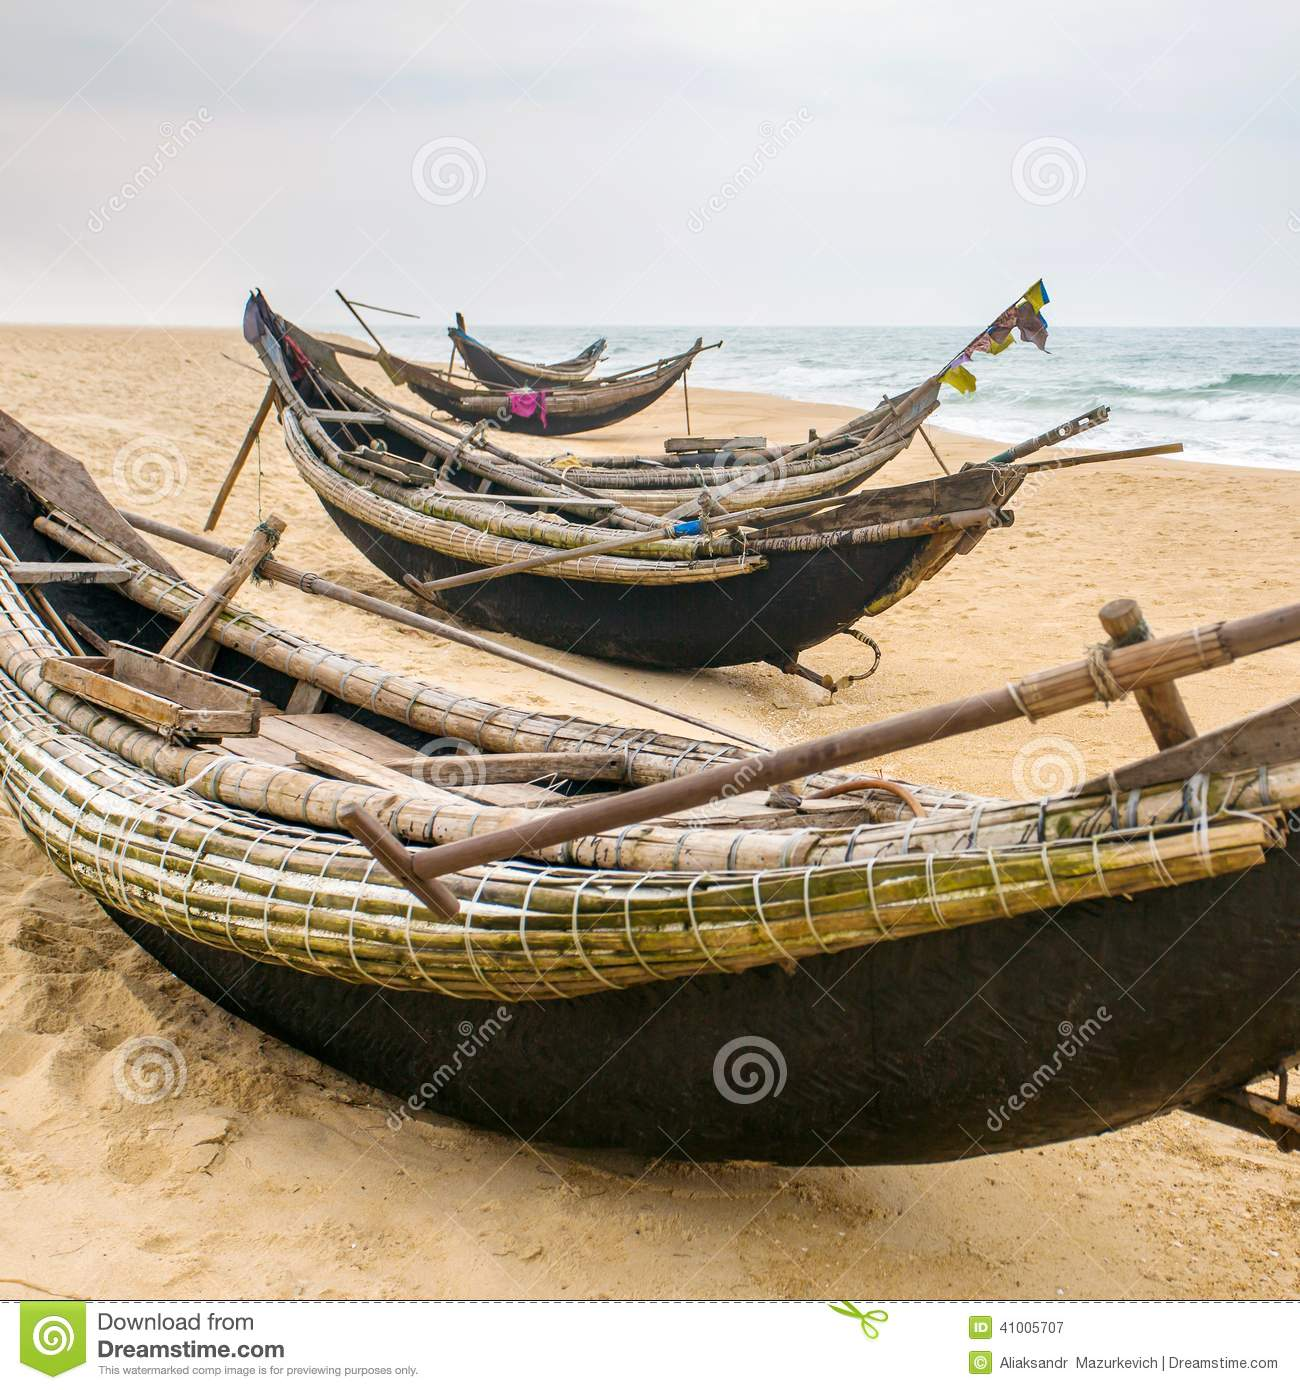 Old Fishing Boats On Beach: Old Fisherman Boats On The Beach In Hue Province Stock